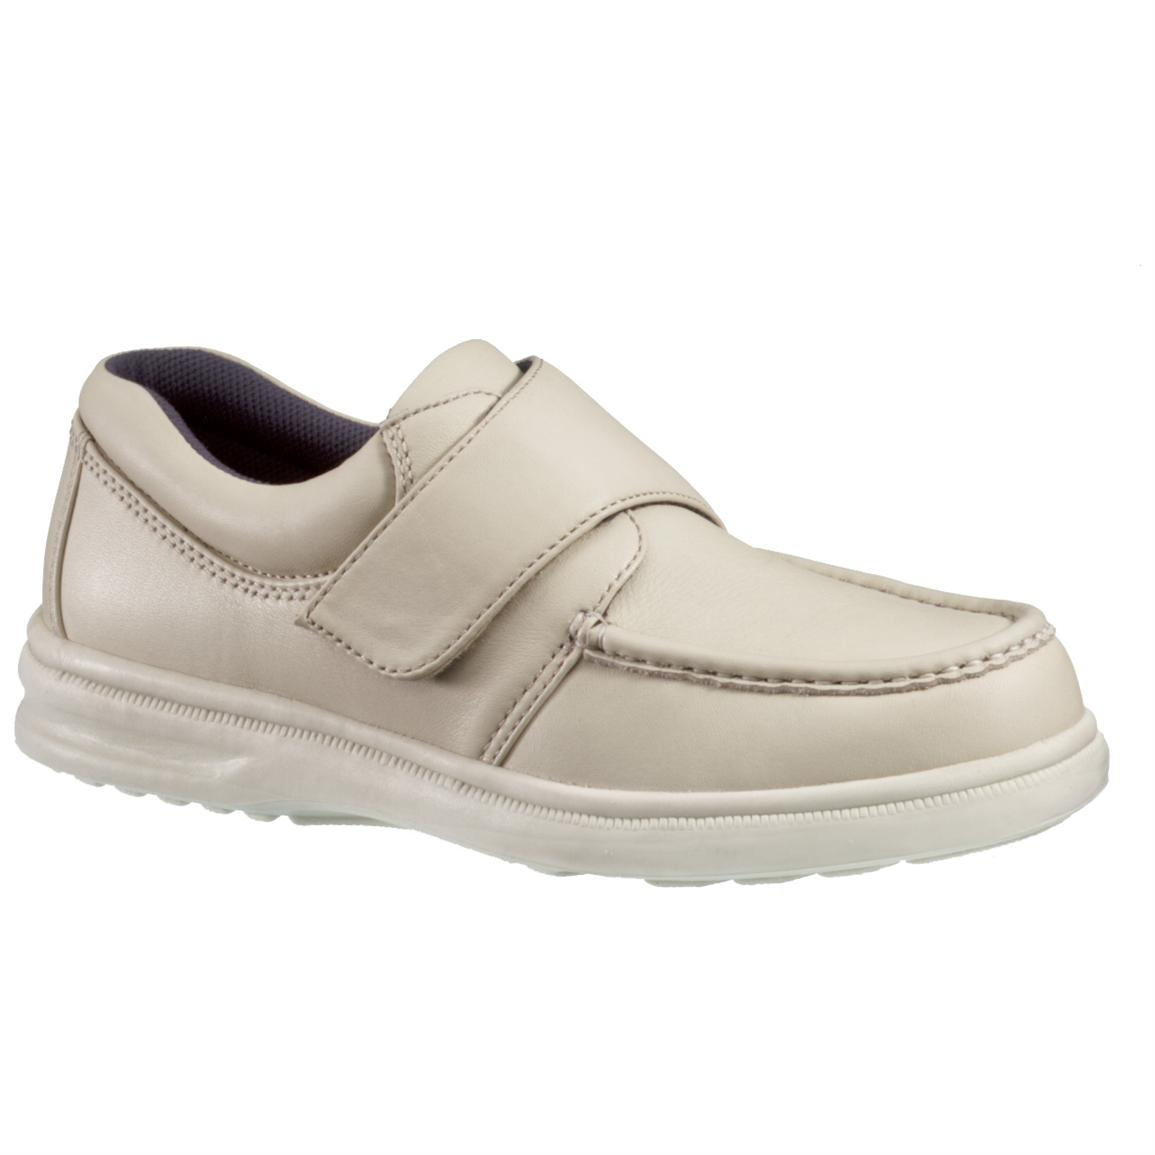 Men's Hush Puppies® Gil Shoes, Sport White